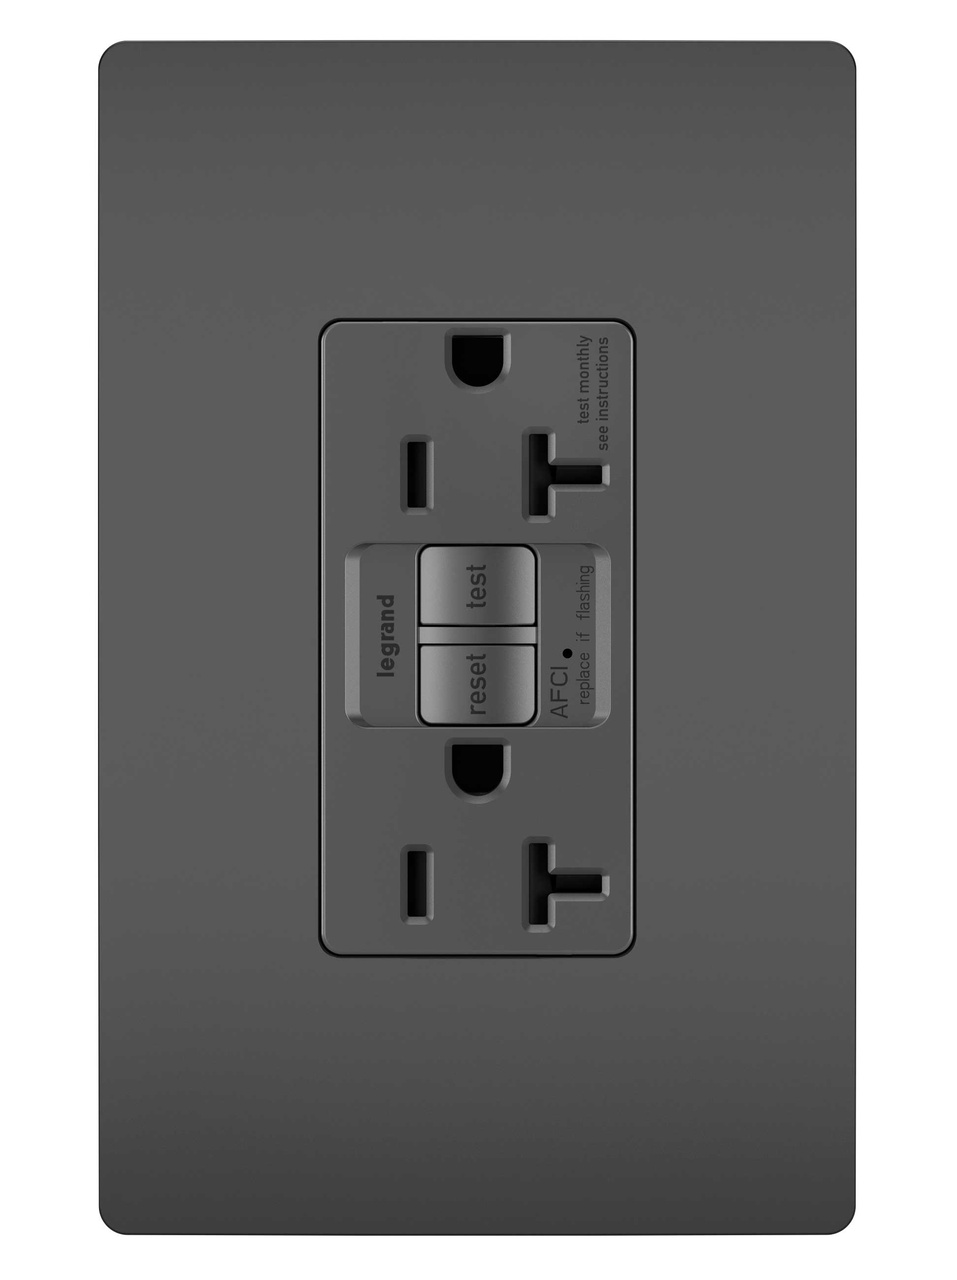 Tamper-Resistant 20A Outlet Branch Circuit AFCI Receptacle, Black